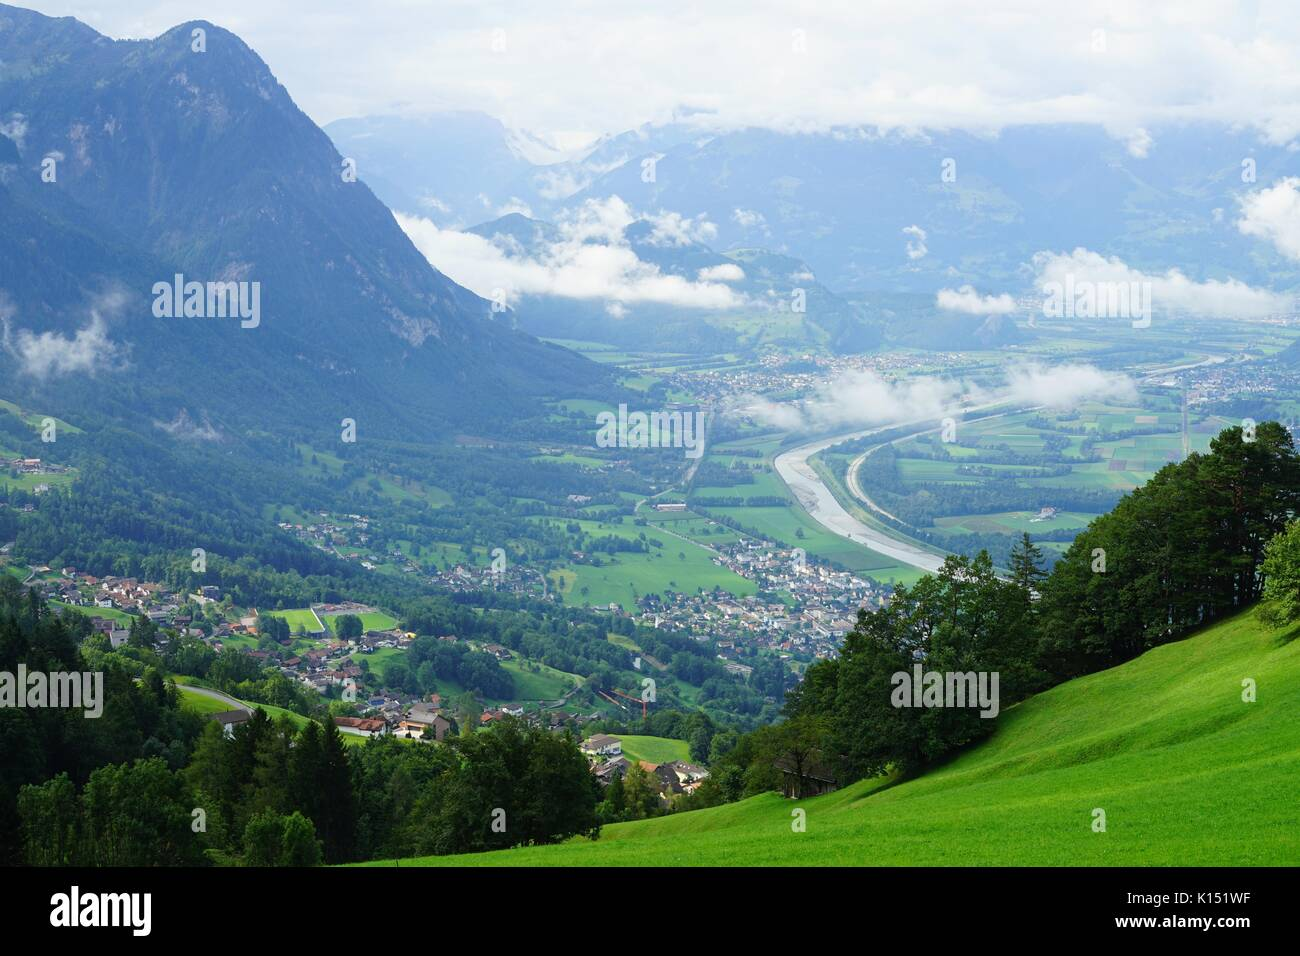 View of the Rhine Valley in the Alps between Liechtenstein and Switzerland Stock Photo